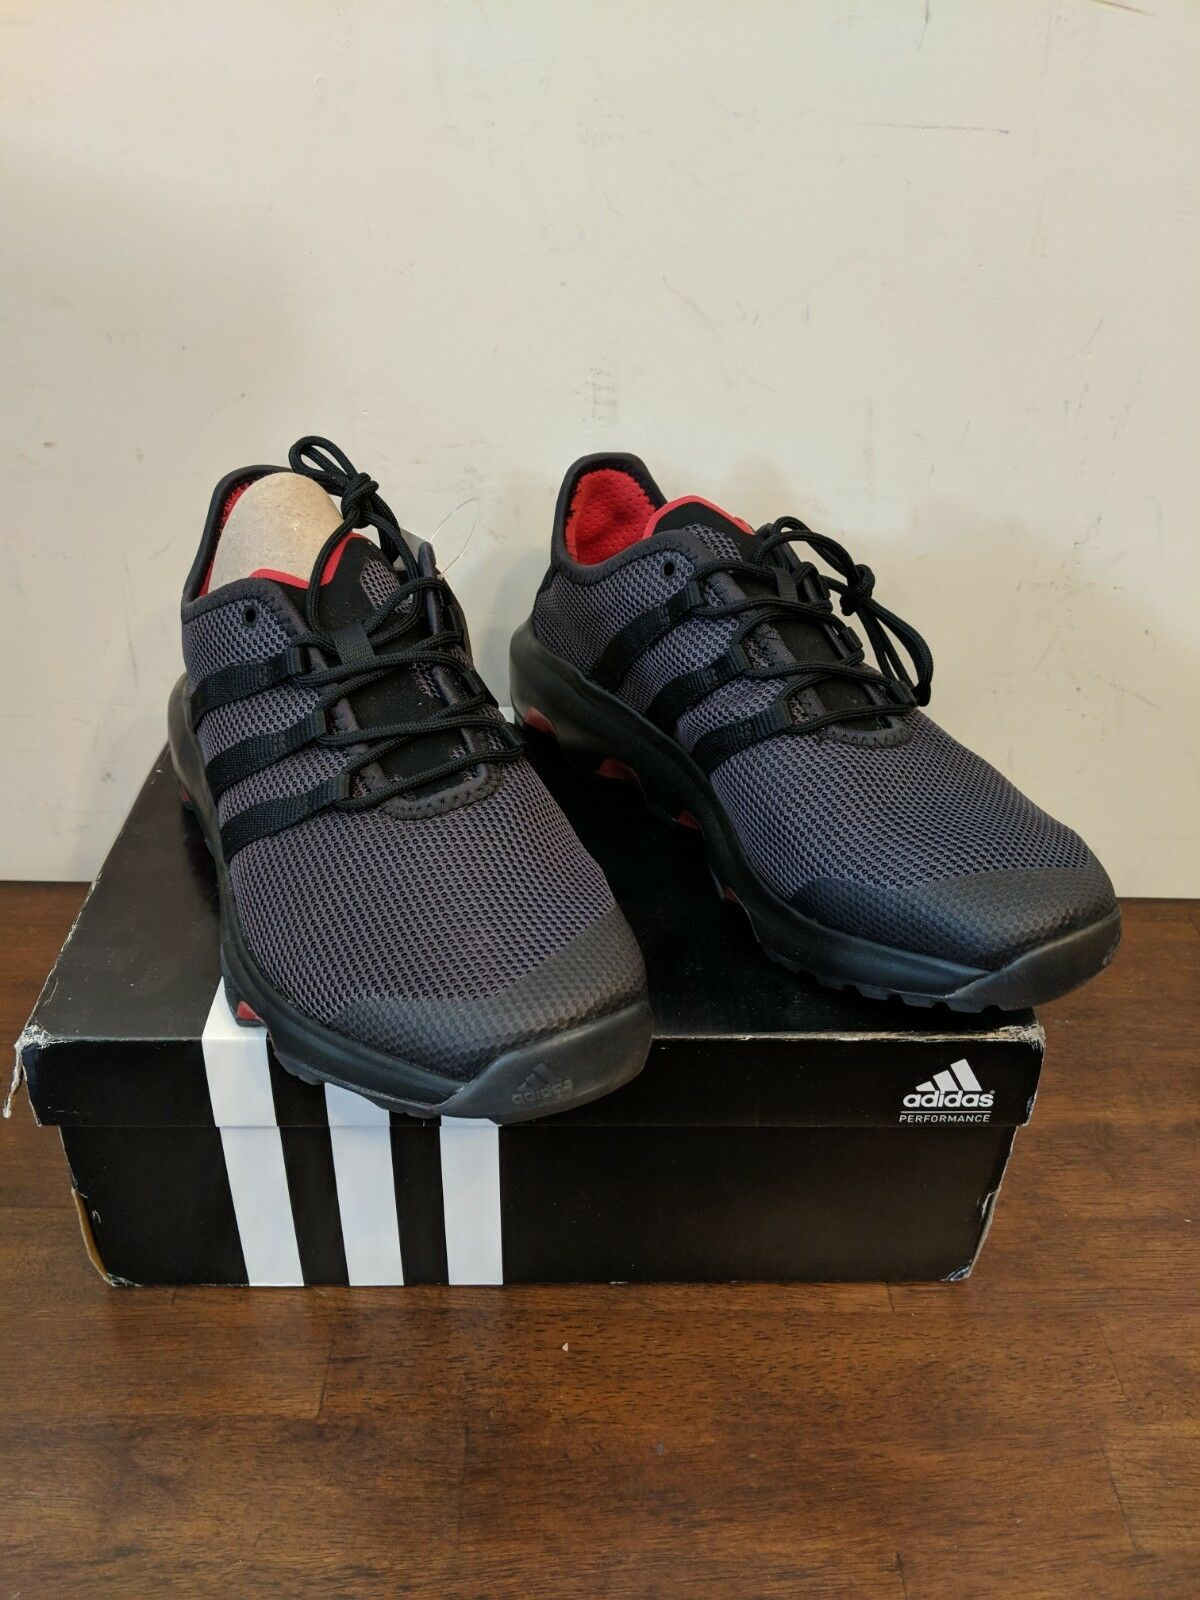 Adidas Sport Performance Men's Climacool Voyager Sneakers, Black, 9.5 M